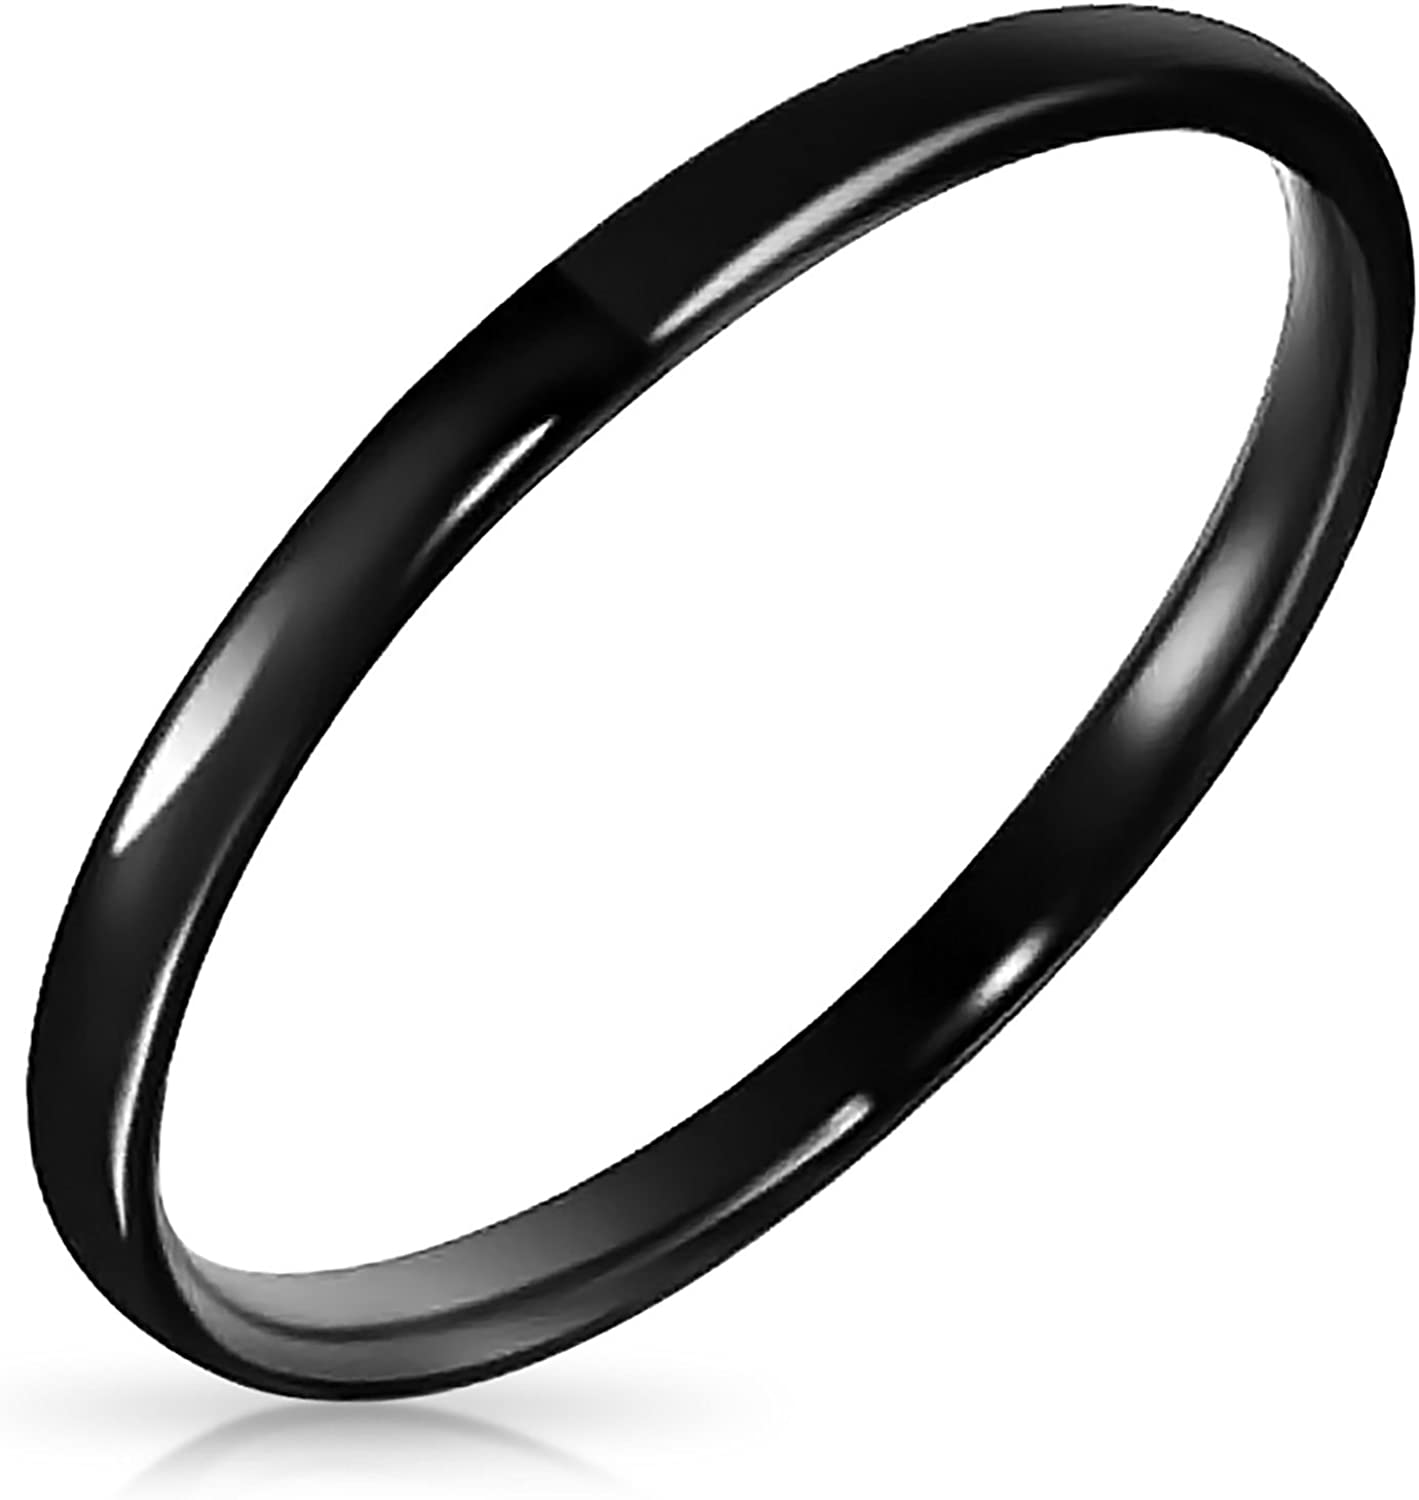 Personalized Thin Stackable Minimalist Simple Dome Black Couples Titanium Wedding Band Ring 2MM Custom Engraved